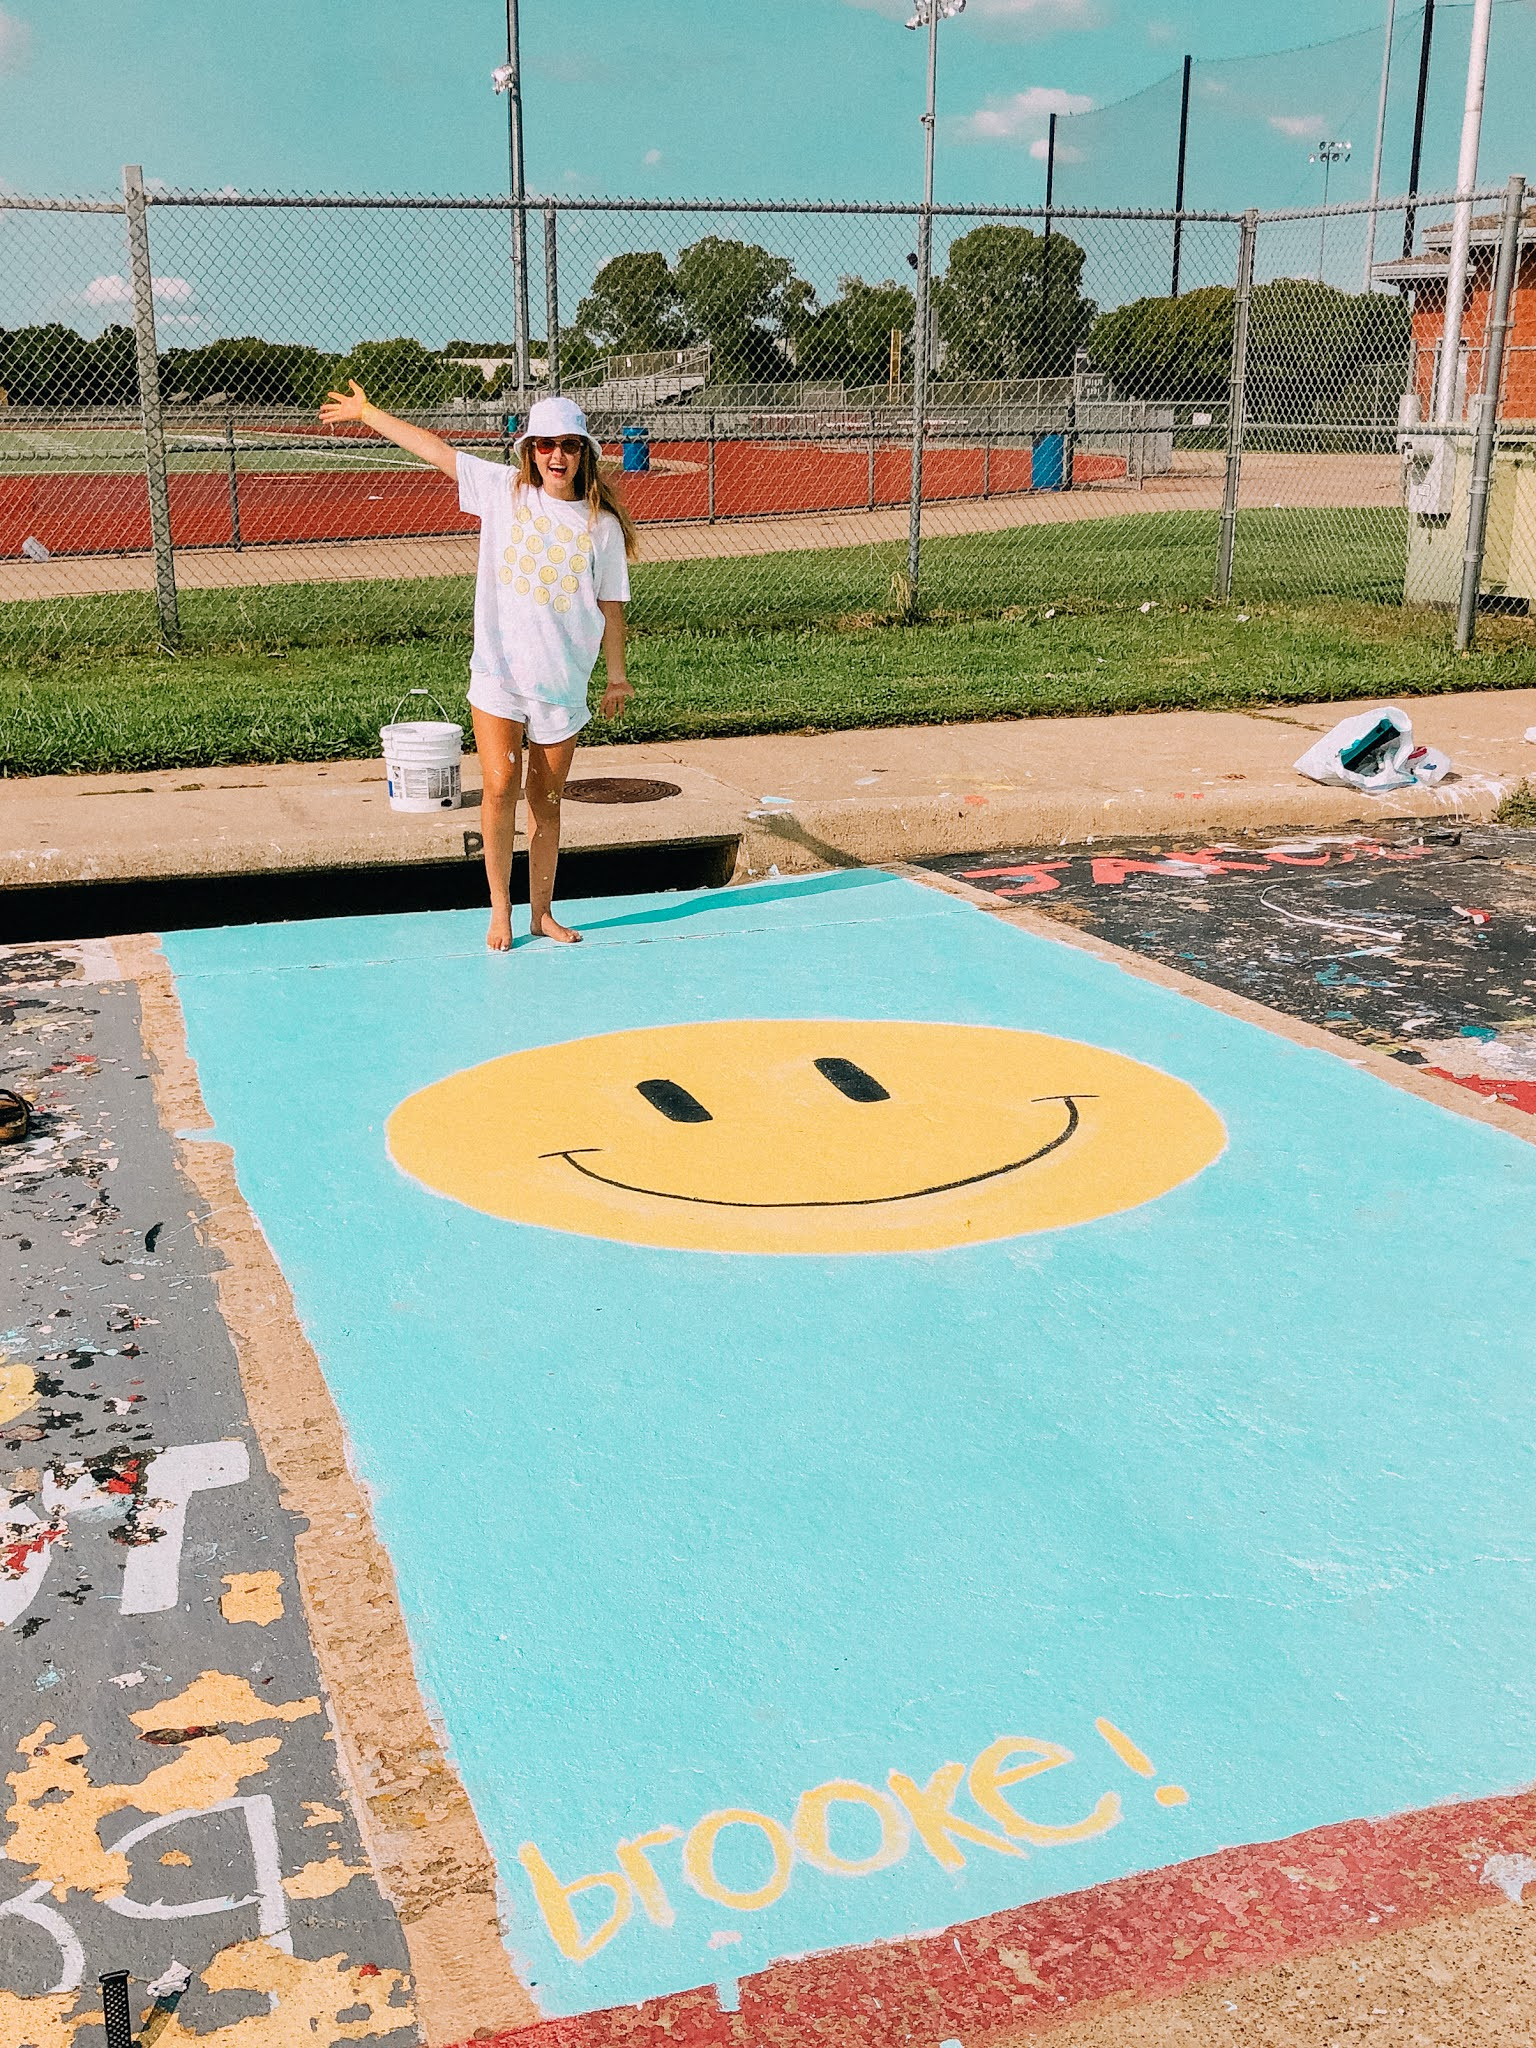 Everything You Need To Know About Painting A Senior Parking Spot